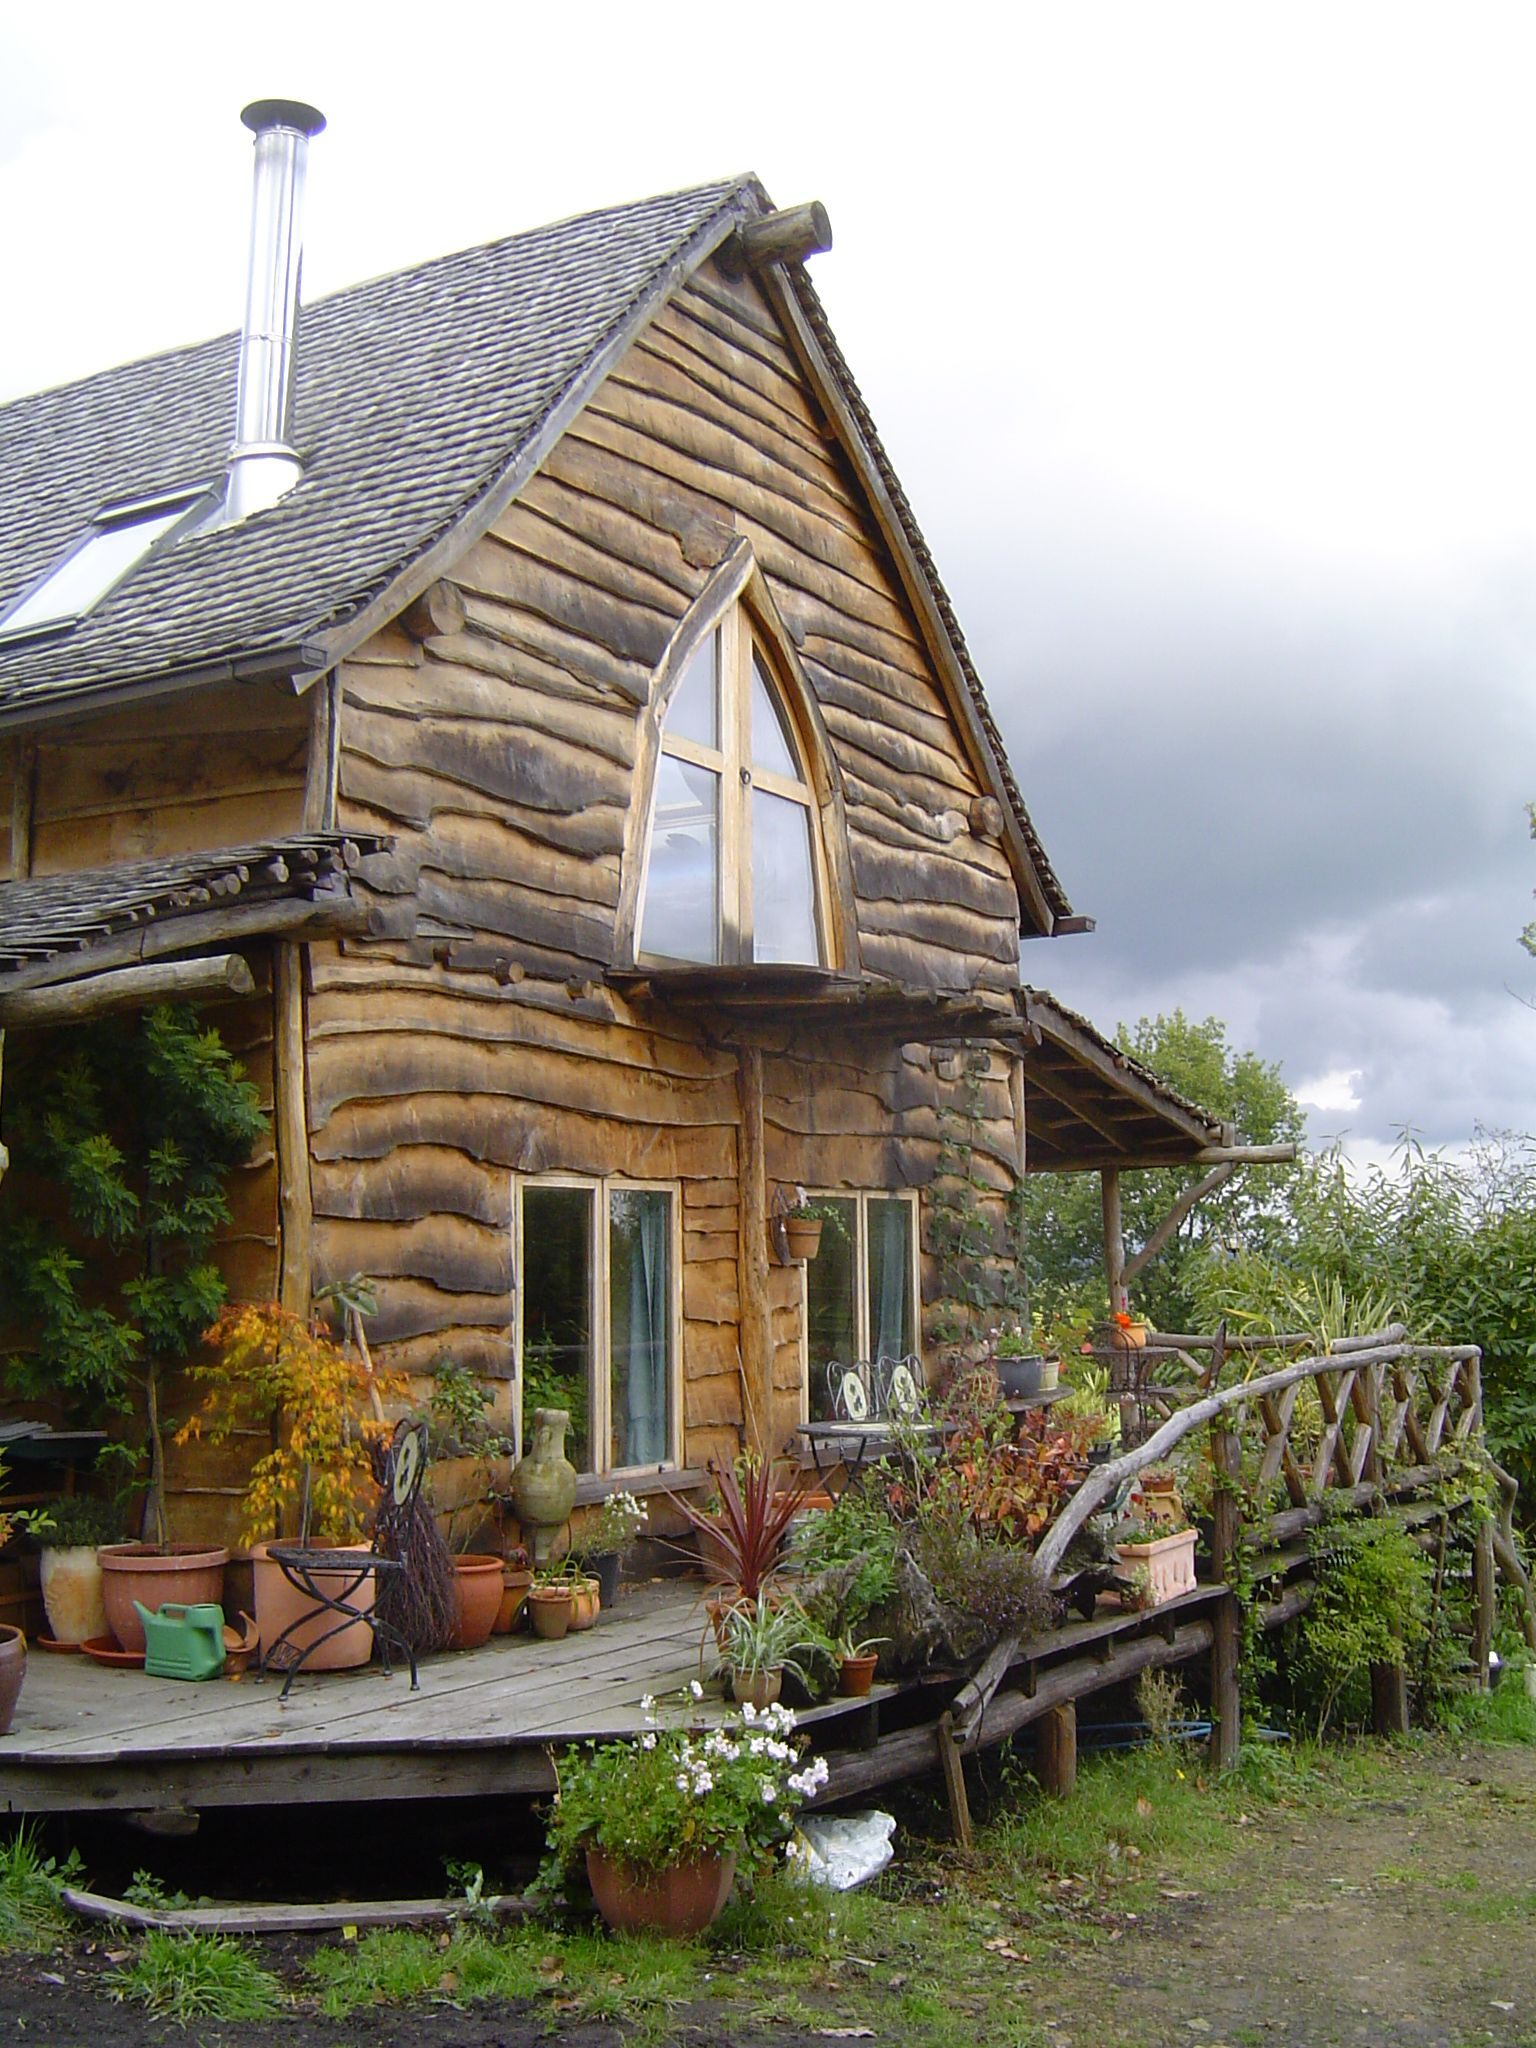 Ben law 39 s woodman 39 s cottage a cruck framed roundhouse as for Cruck frame house plans